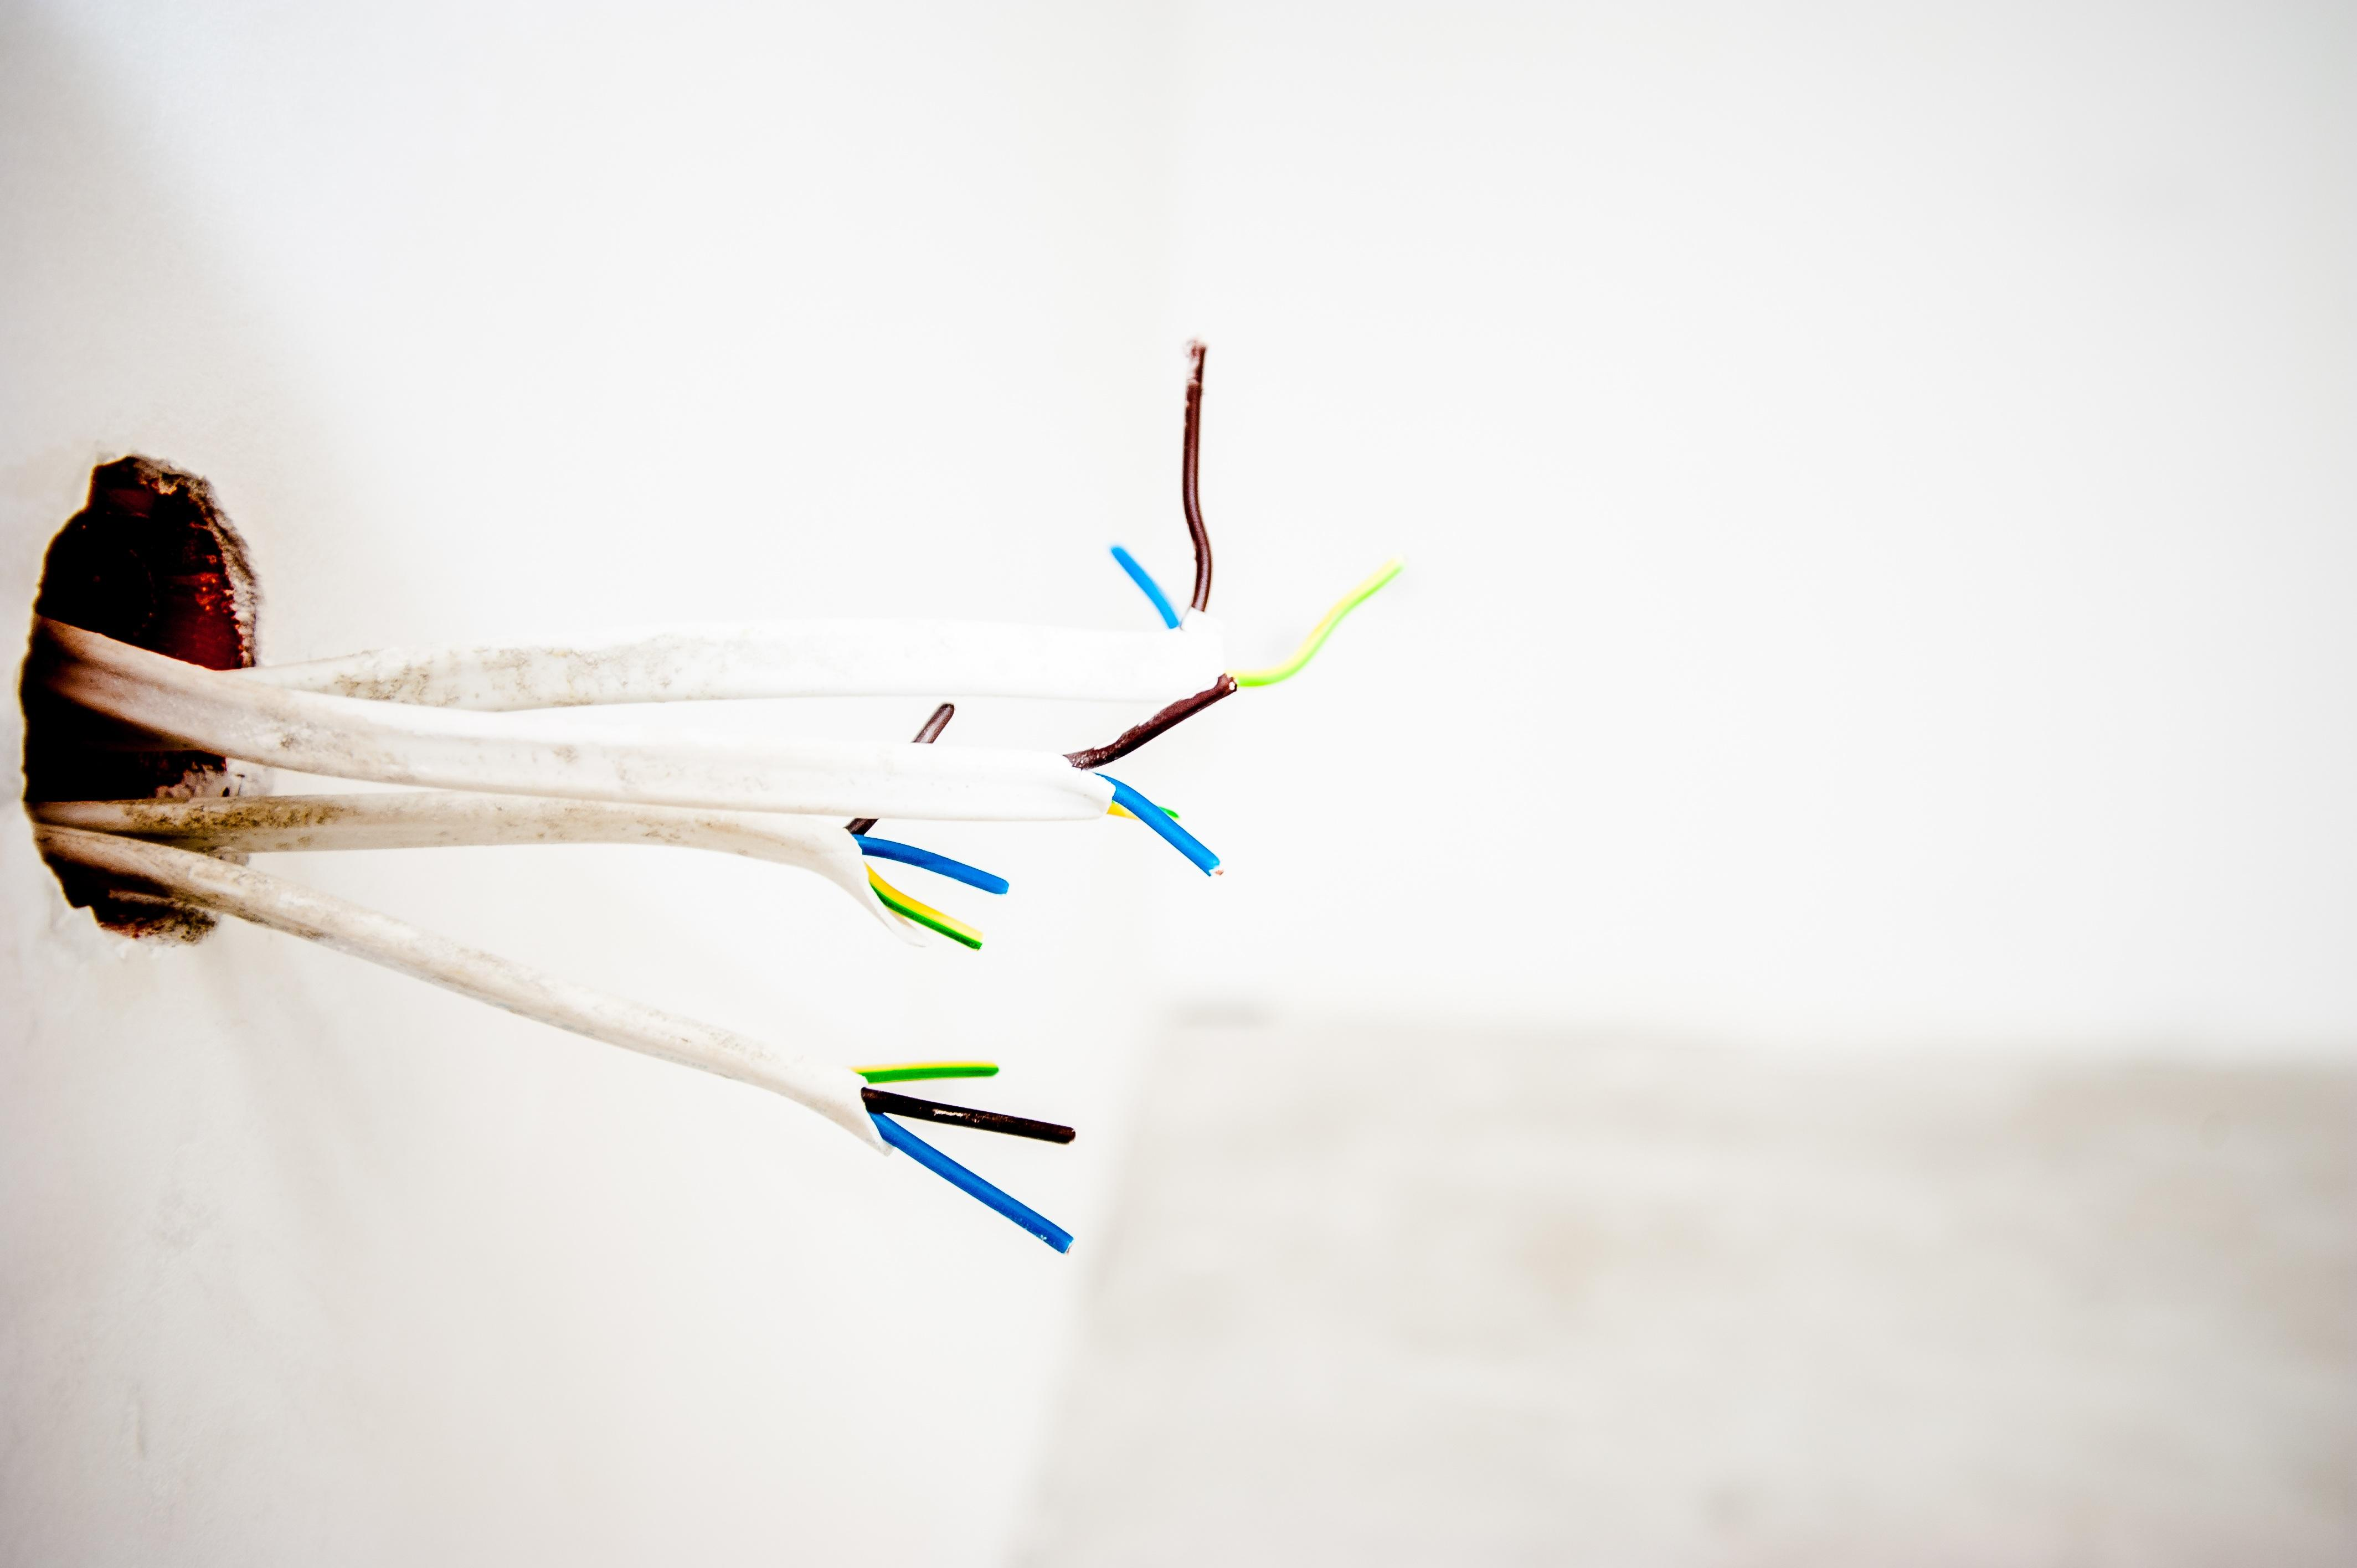 cables-1080569.jpg